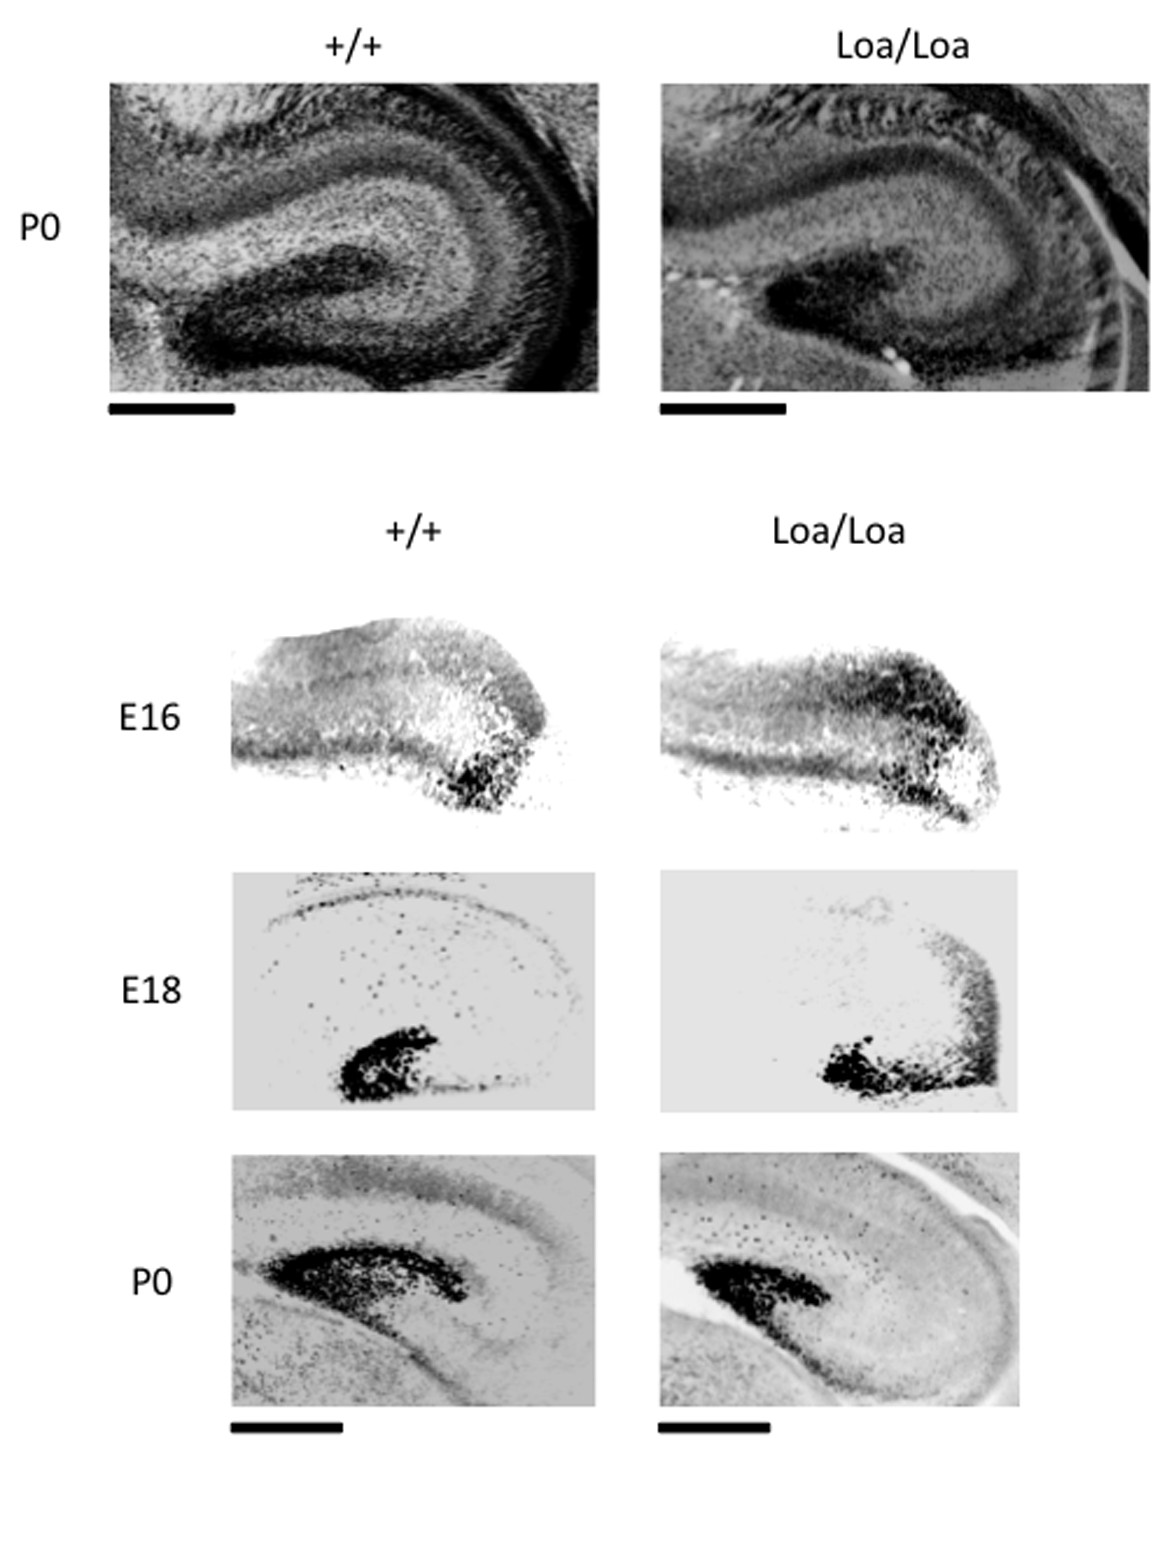 http://static-content.springer.com/image/art%3A10.1186%2F1749-8104-6-26/MediaObjects/13064_2011_Article_171_Fig2_HTML.jpg